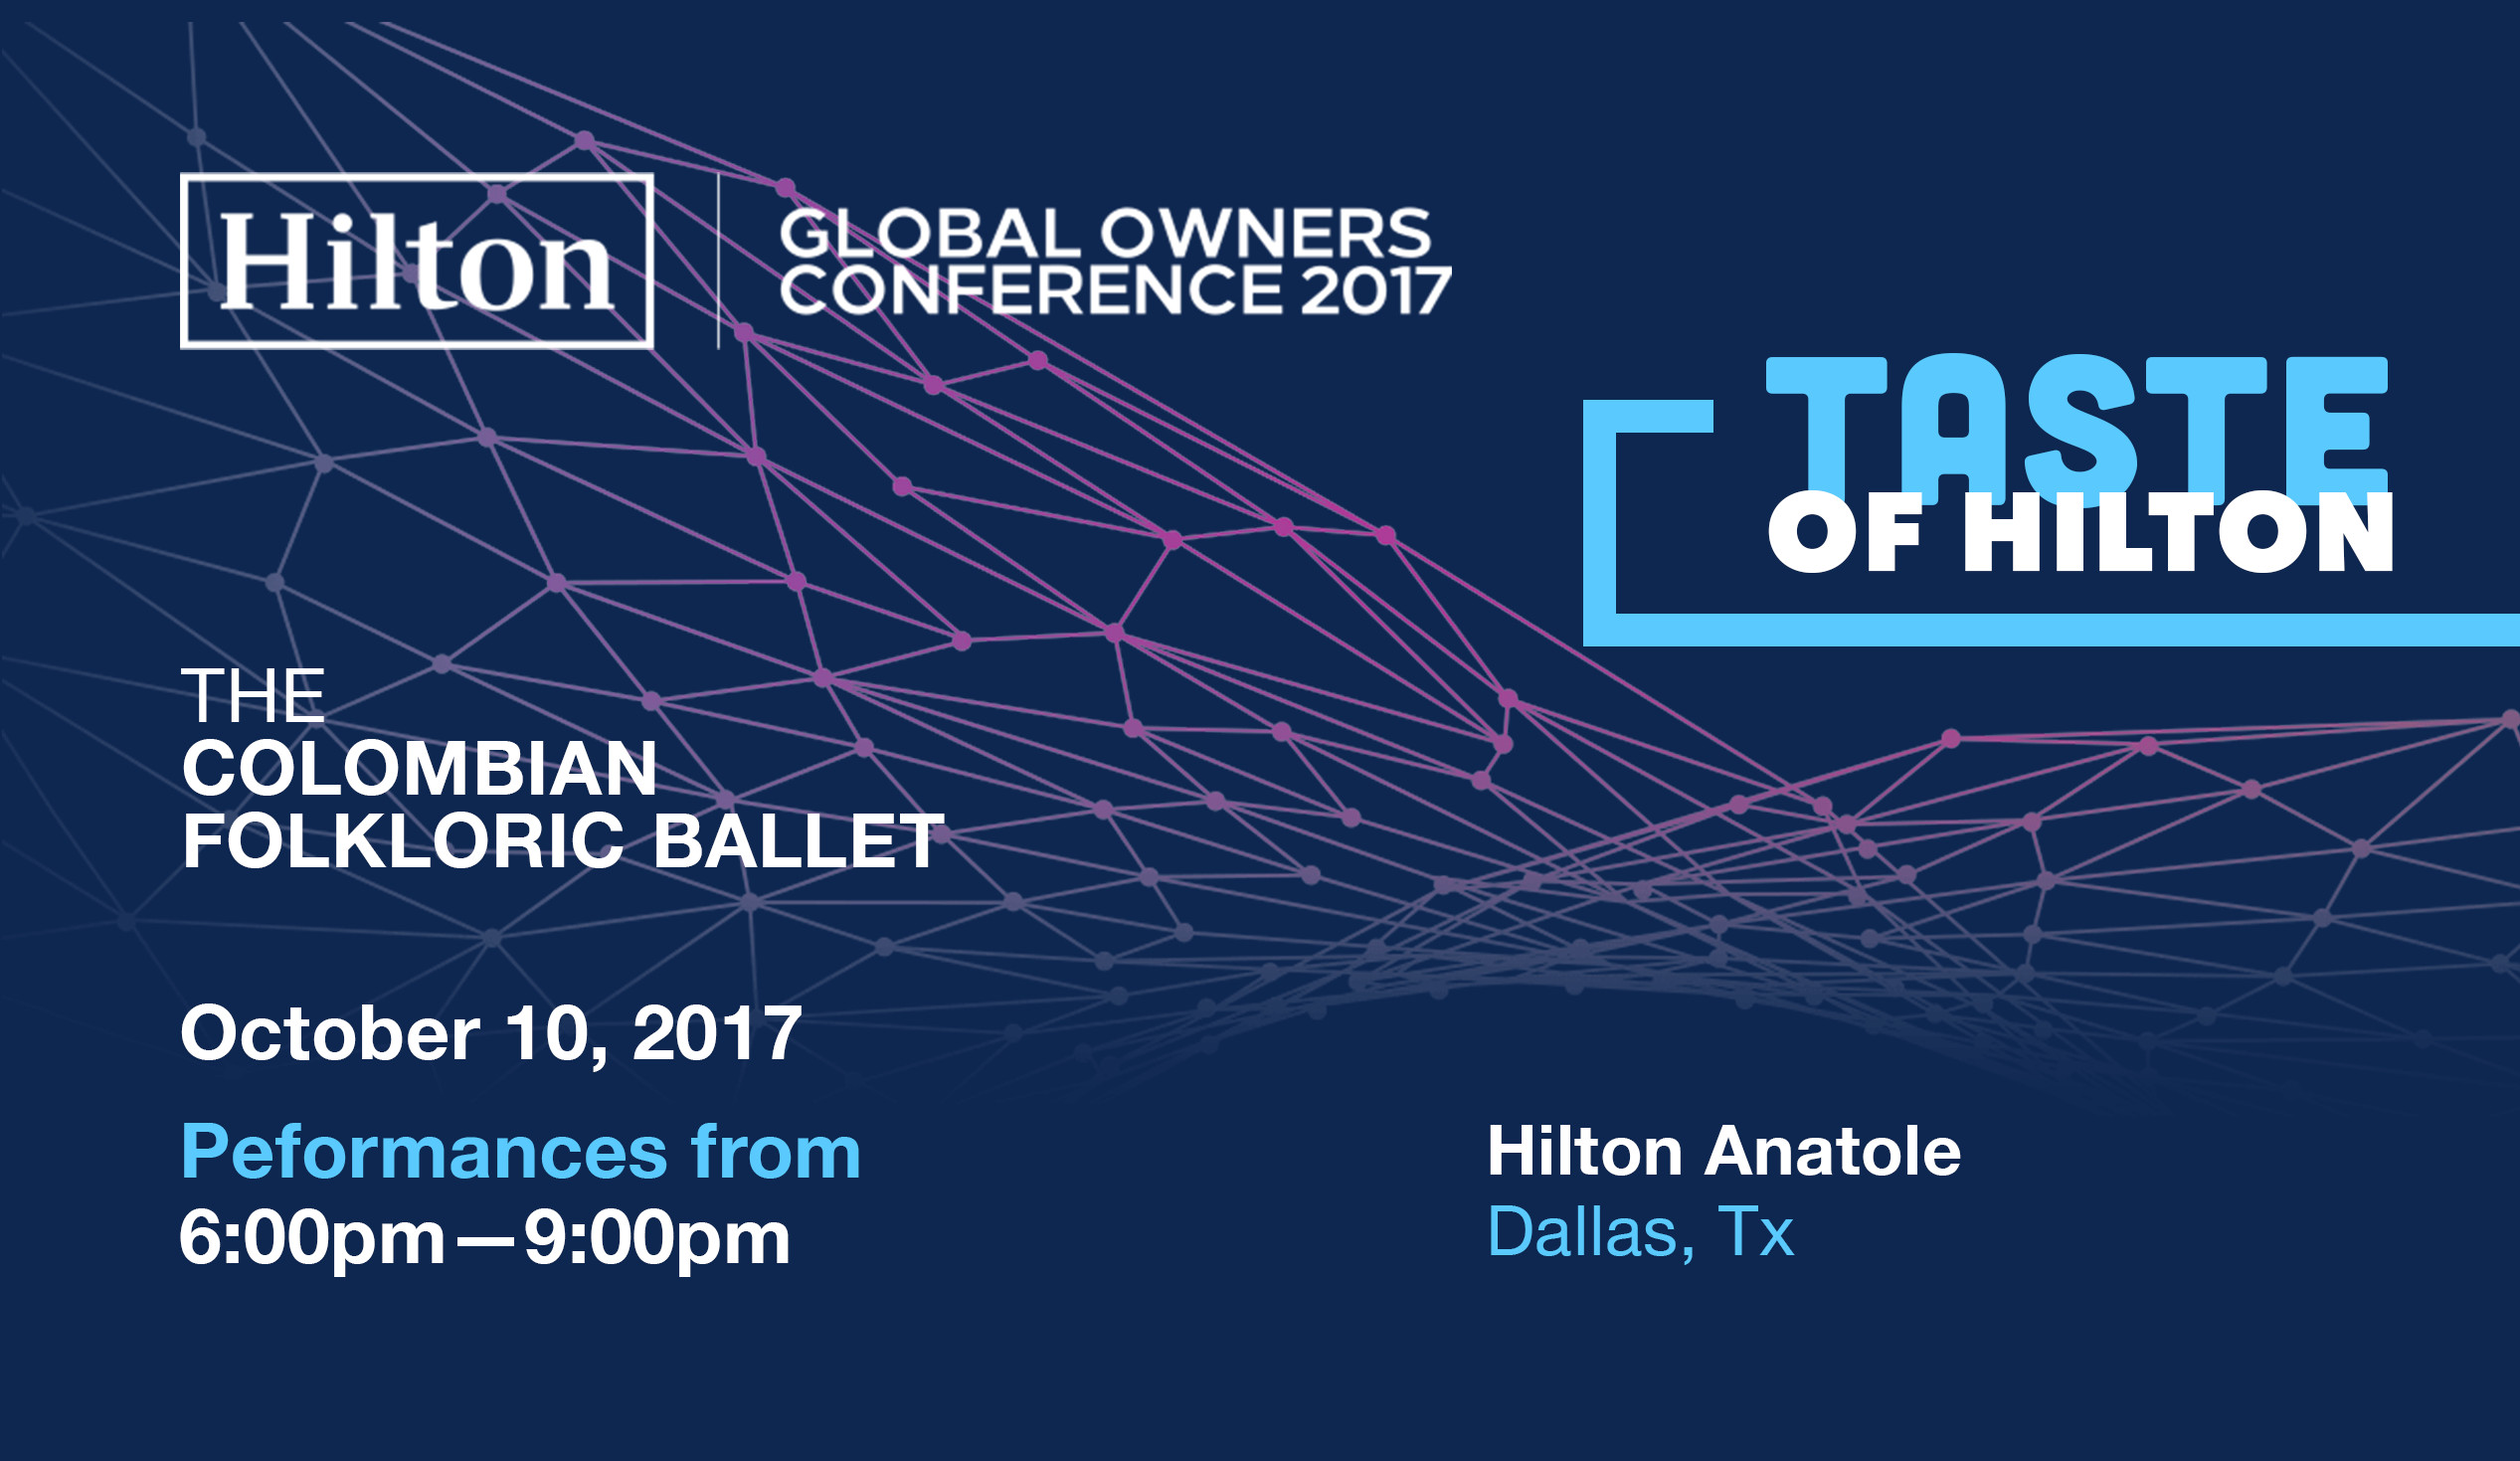 The Colombian Folkloric Ballet—Hilton Global Owners Conference 2017-Taste of Hilton